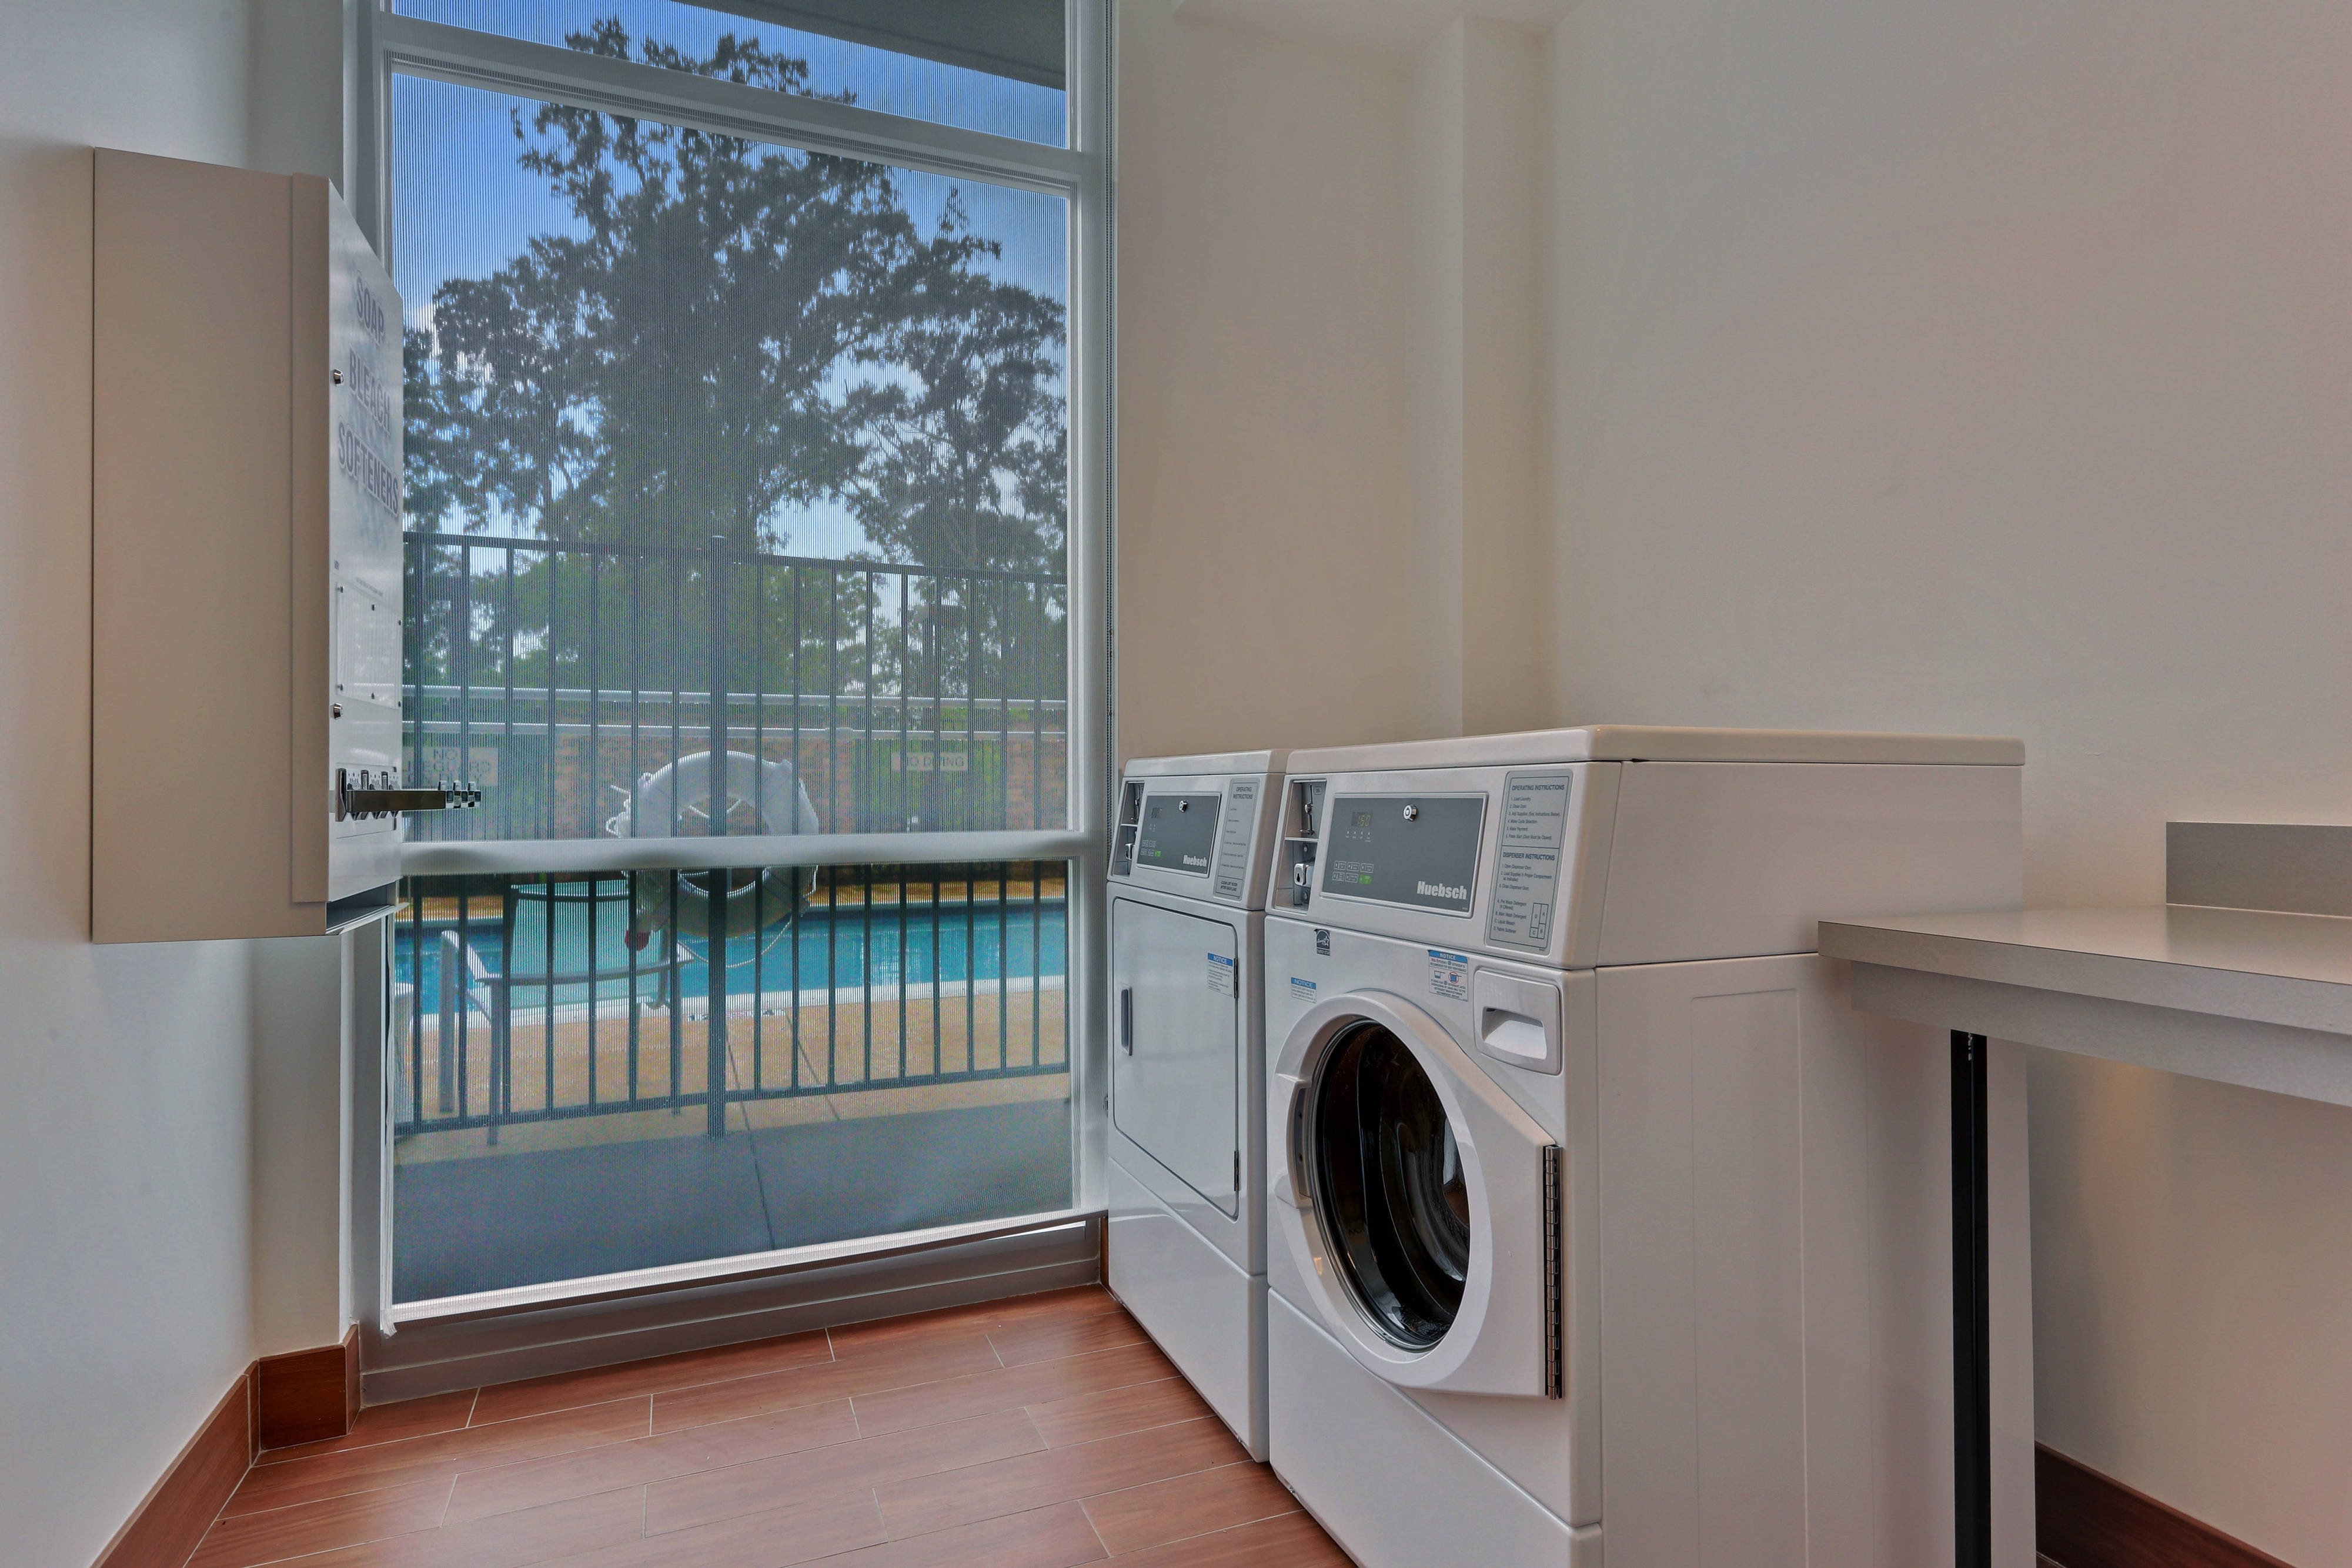 Gonzales hotel laundry room